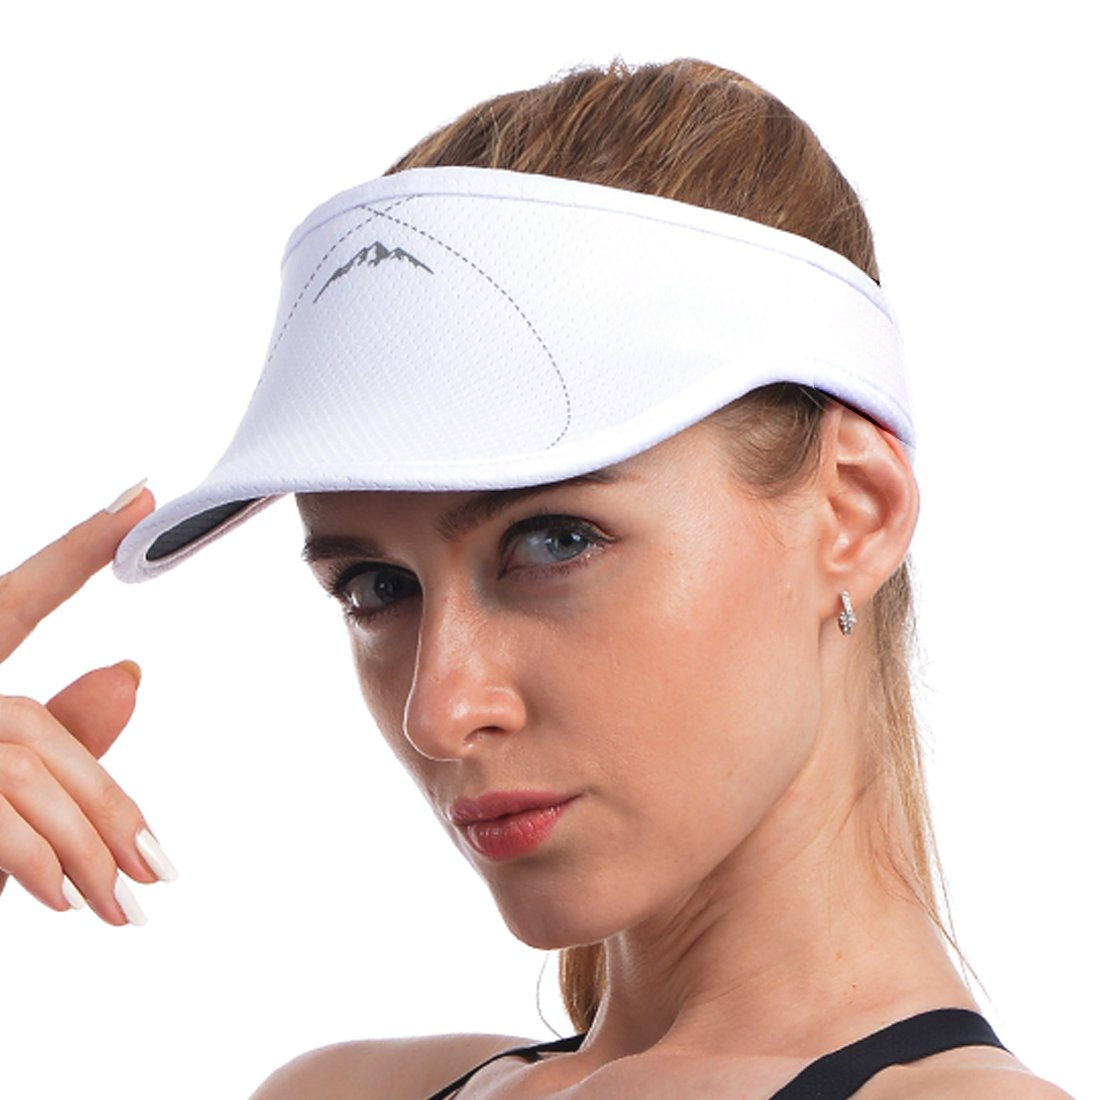 UShake Sports Visor for Man or Woman in Golf Running Gogging with Black/White/Rose Red Colors (White)